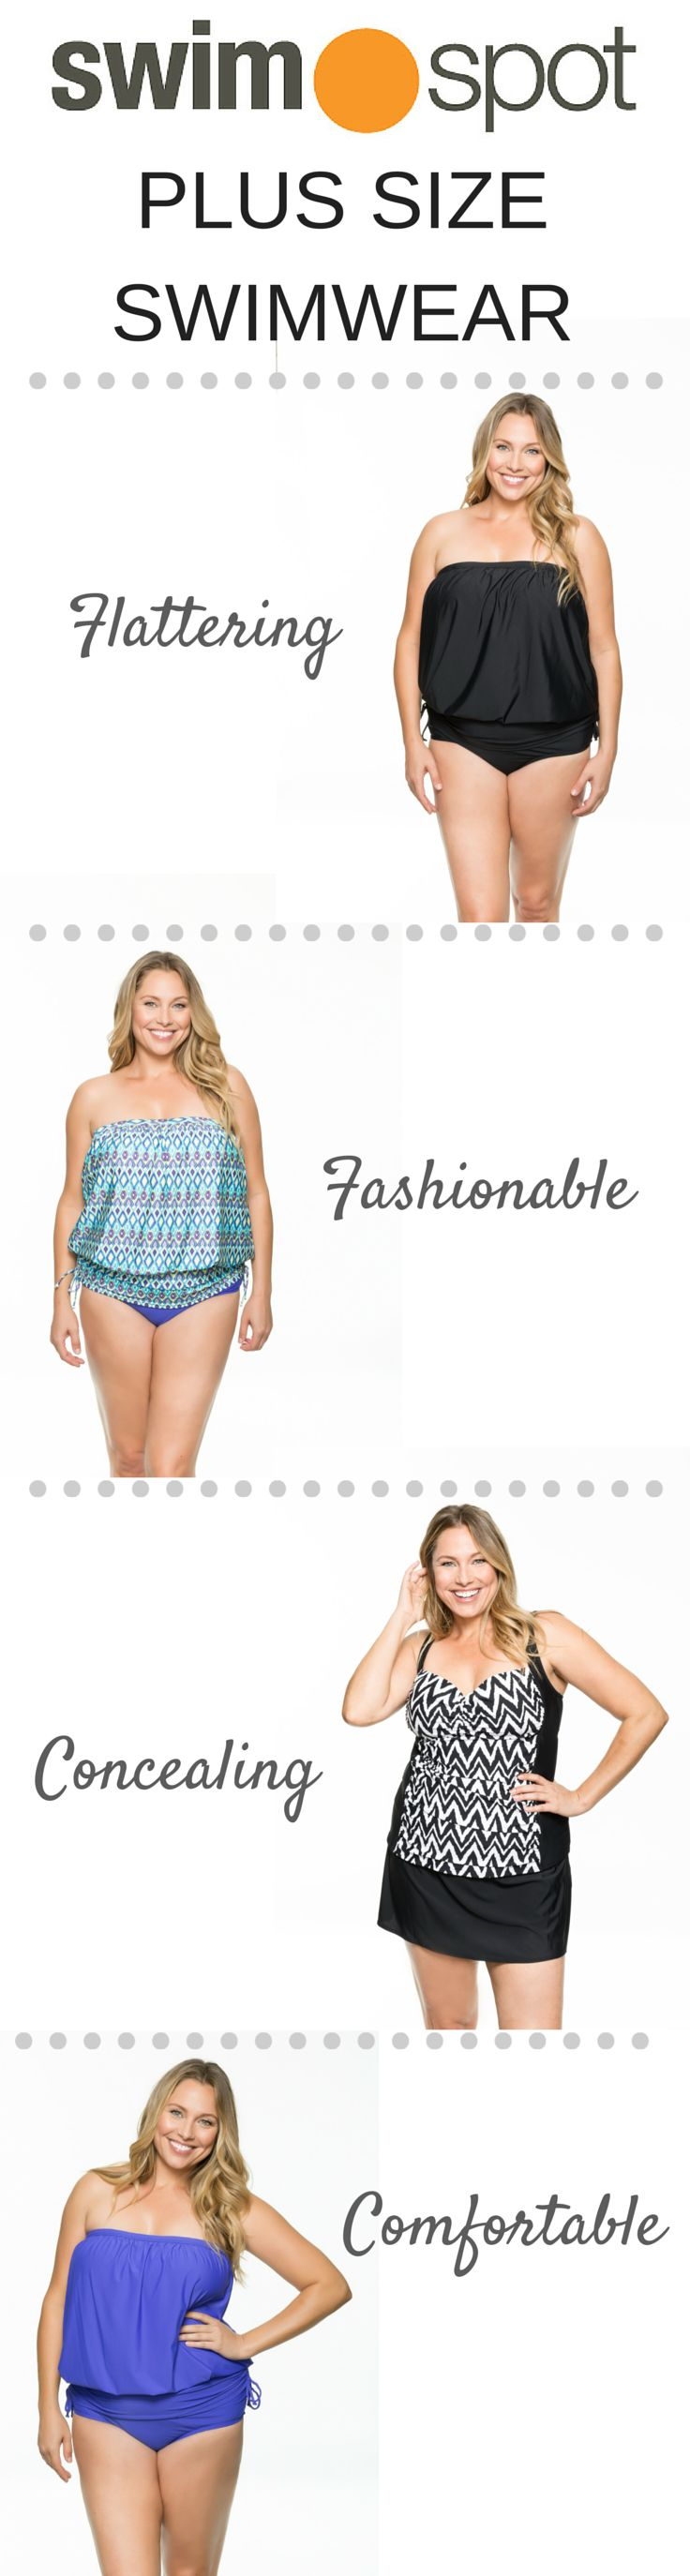 Plus Size swimwear from SwimSpot! Flattering, fashionable, concealing, & comfortable...what more could a girl want?!